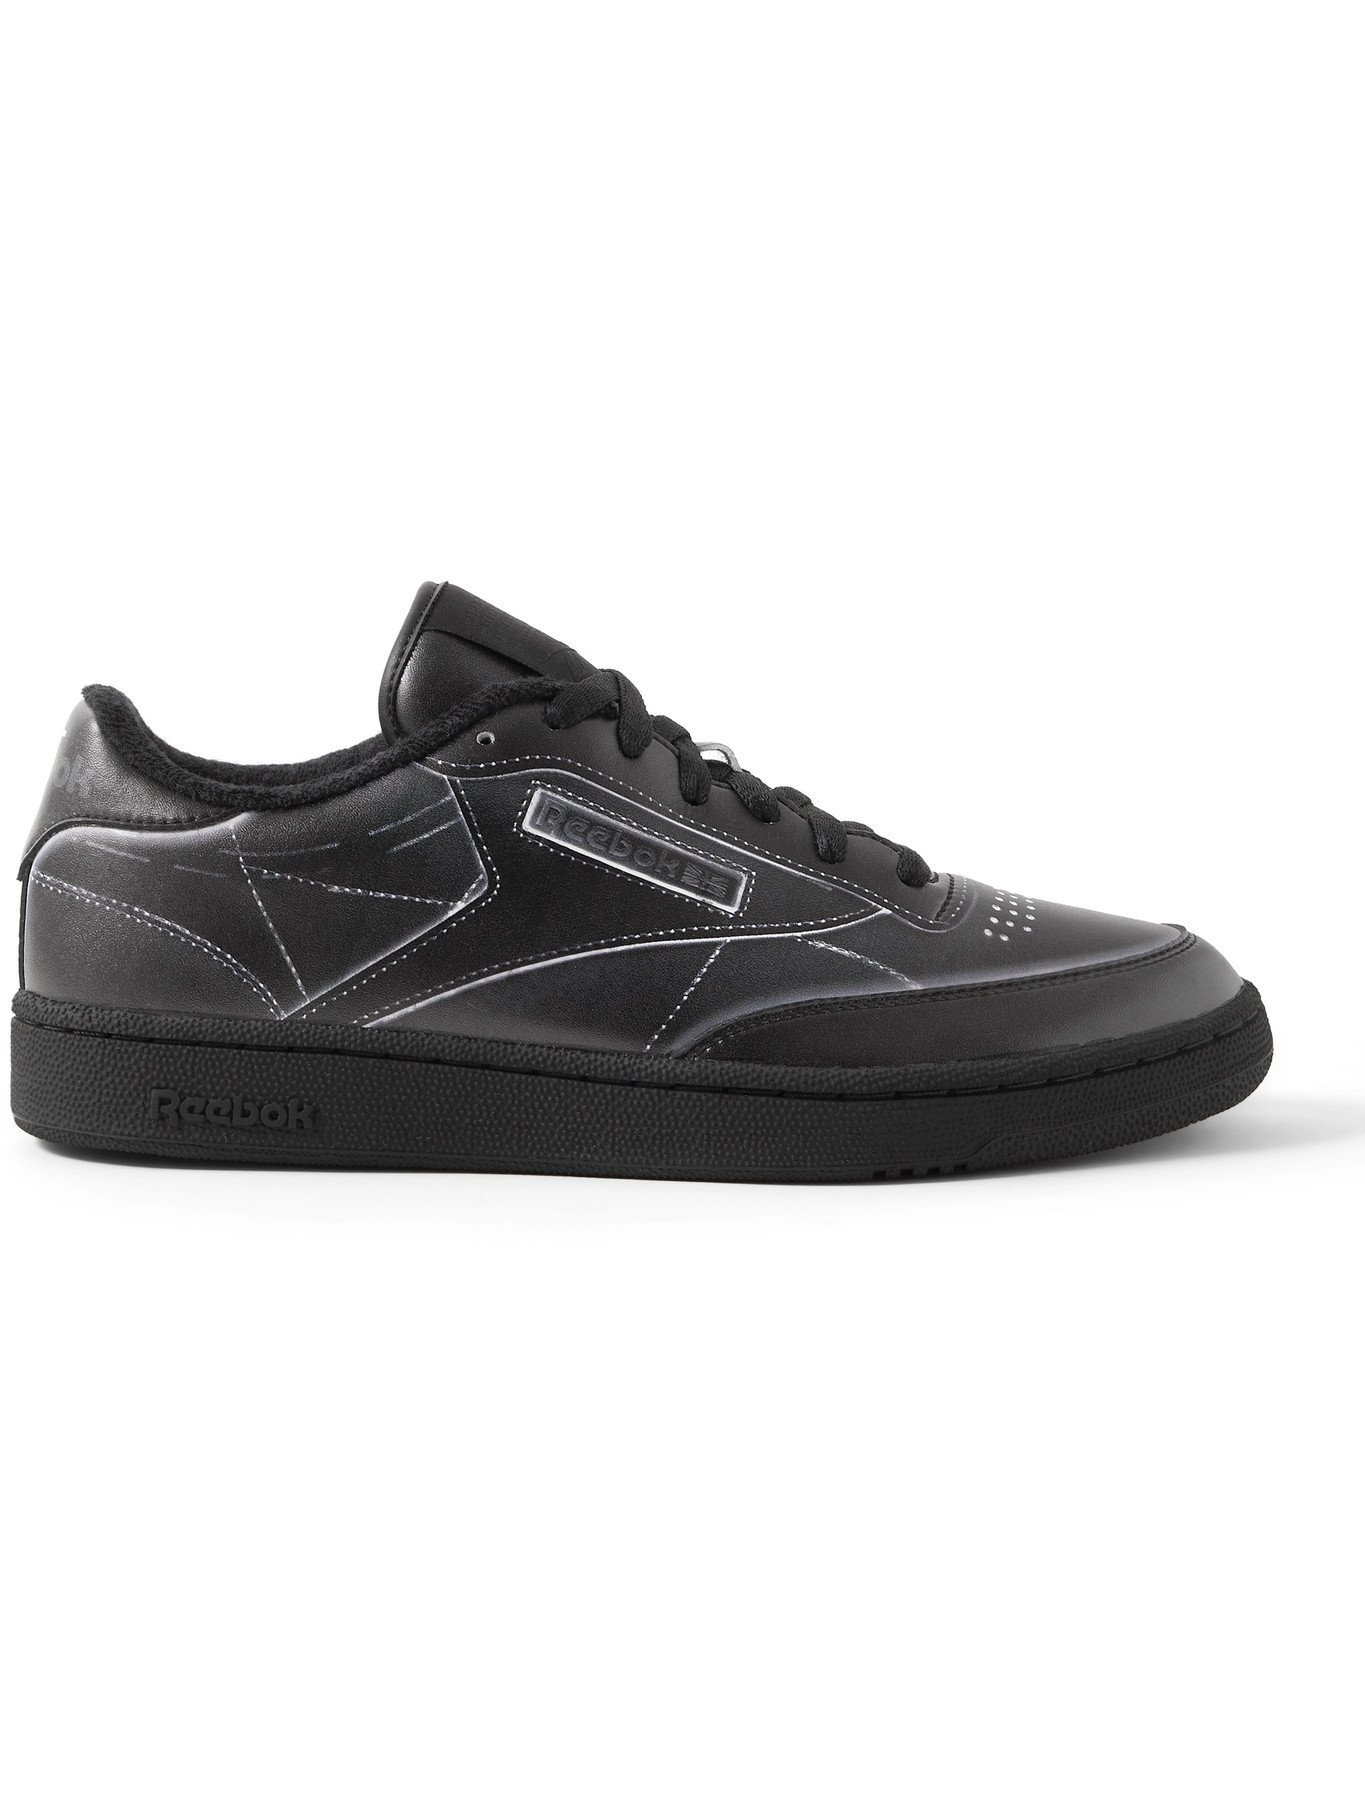 Photo: REEBOK - Maison Margiela Project 0 Club C Printed Leather Sneakers - Black - 9